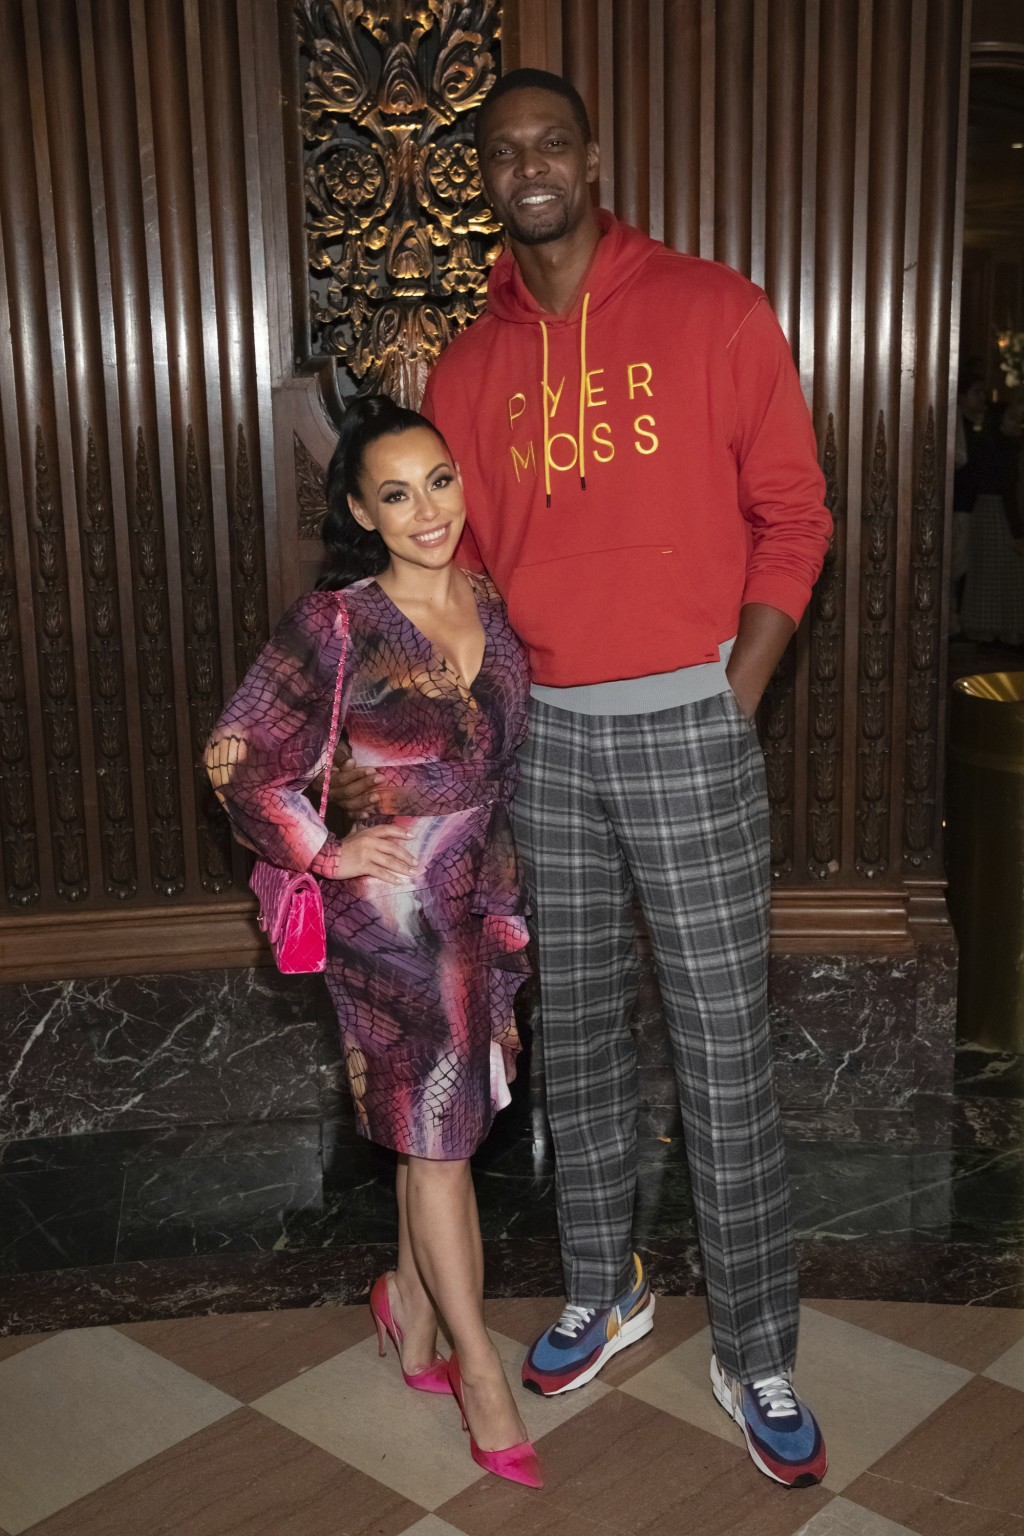 Professional basketball player Chris Bosh and a guest attend the Pyer Moss runway show during NYFW Spring/Summer 2020 on Sunday, Sept. 8, 2019, in Bro...